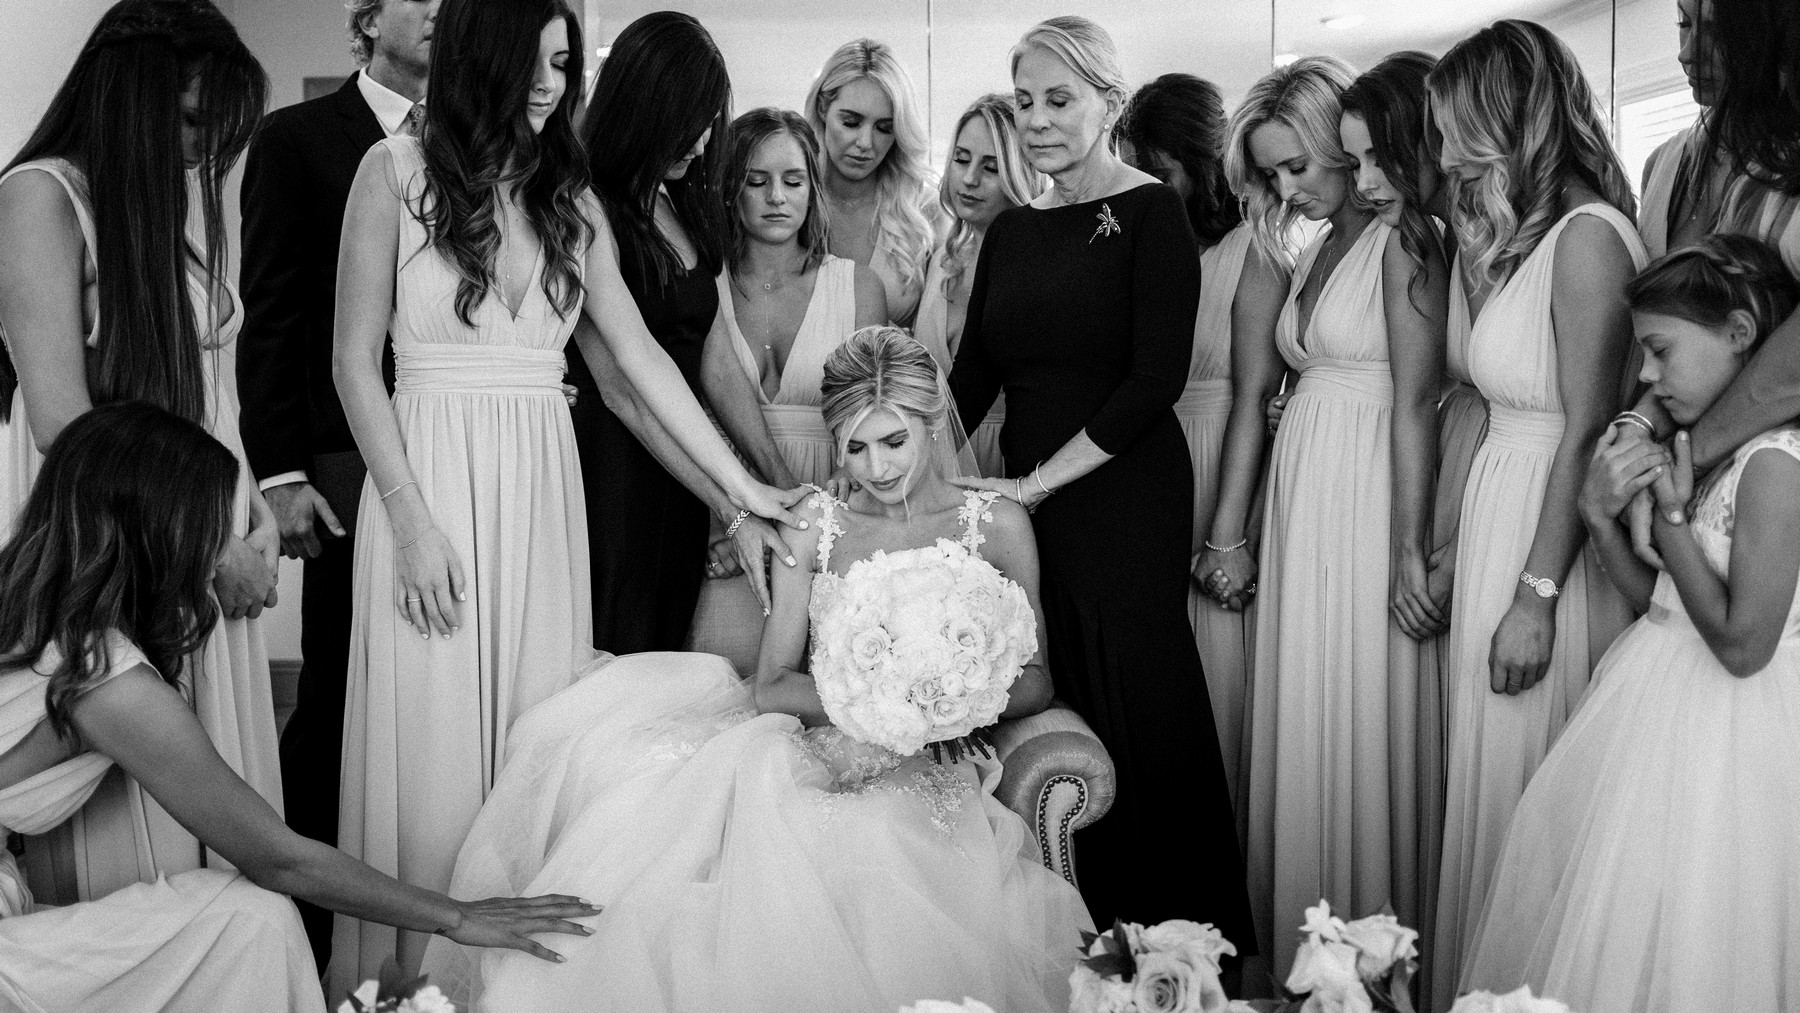 Women praying with bride - photo by John and Joseph - Los Angeles